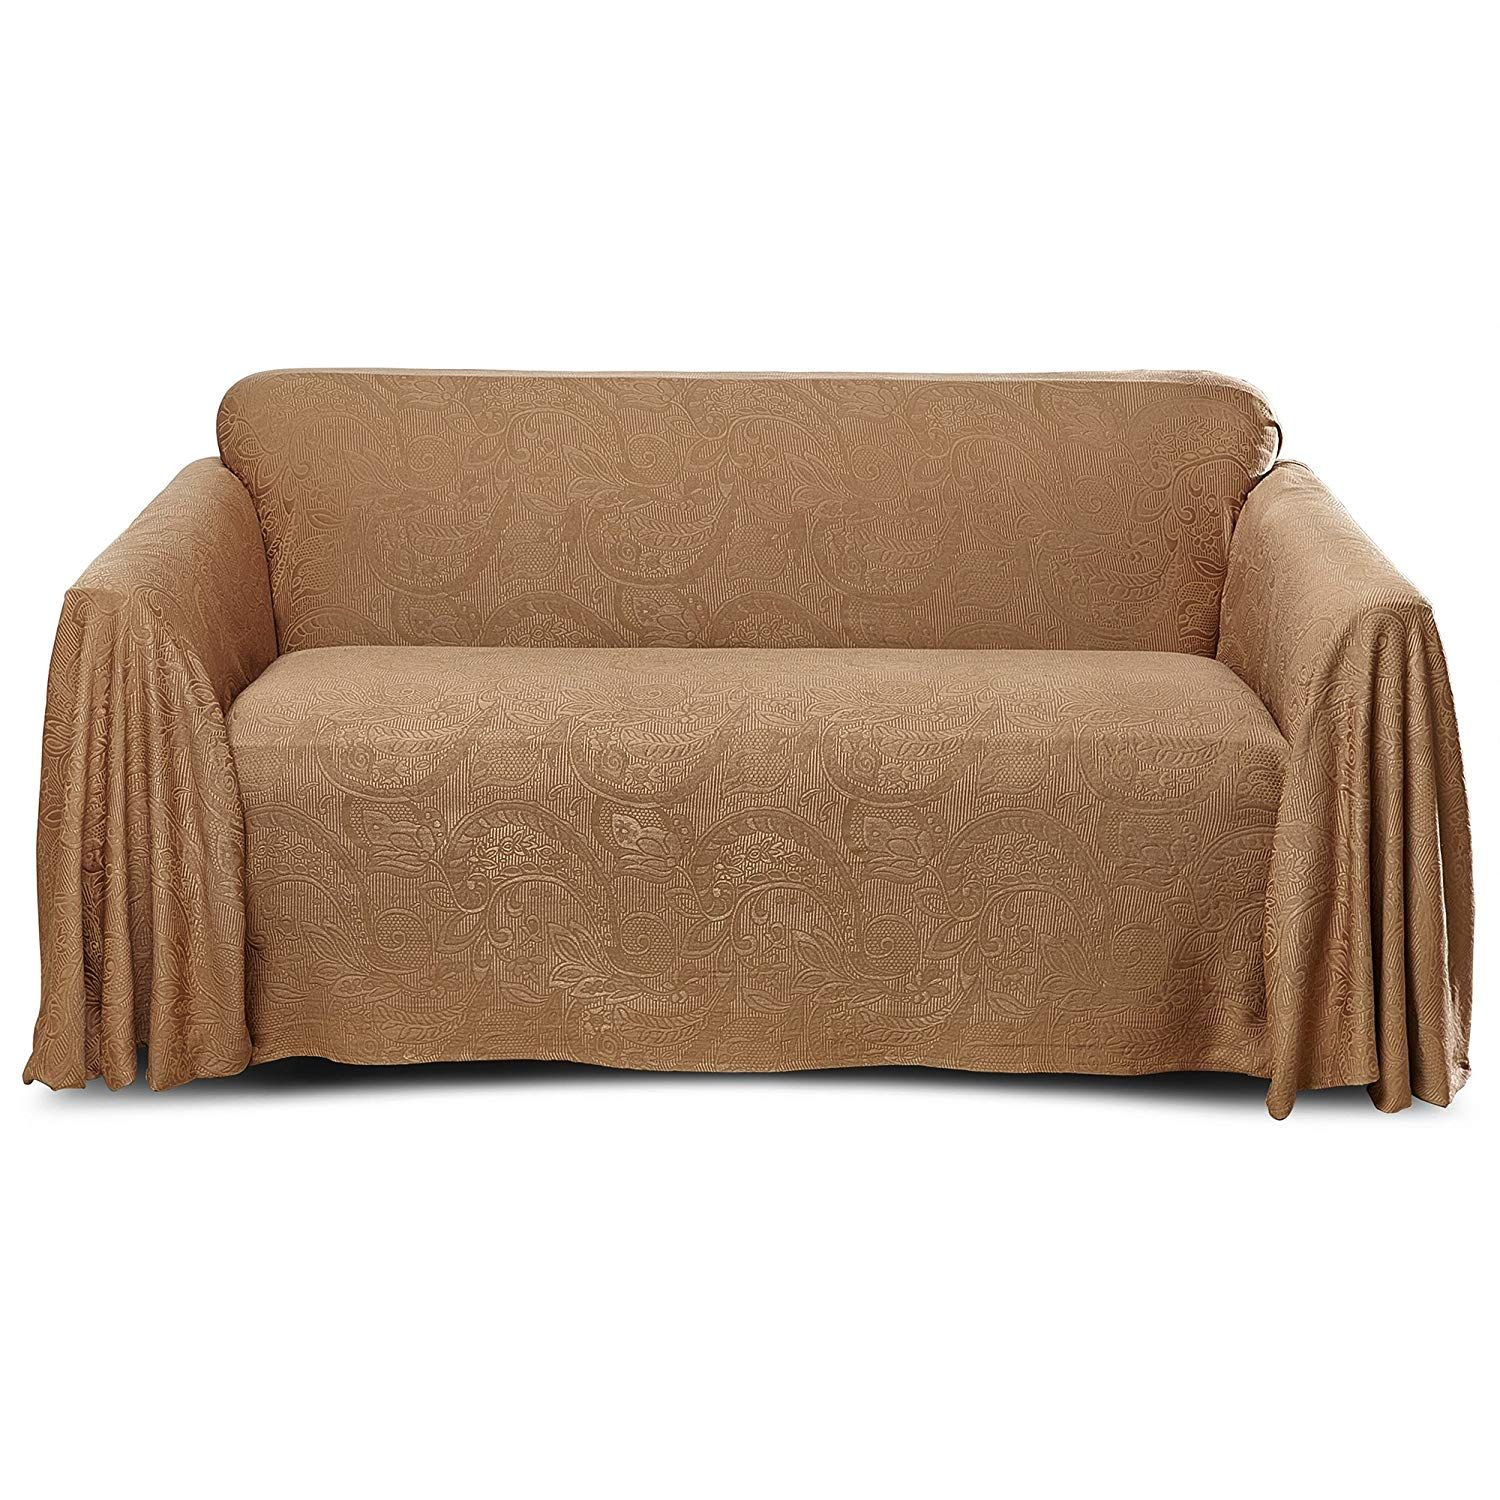 Top 13 Best Sofa Covers In 2020 Reviews Best Sofa Covers Loveseat Covers Sofa Covers